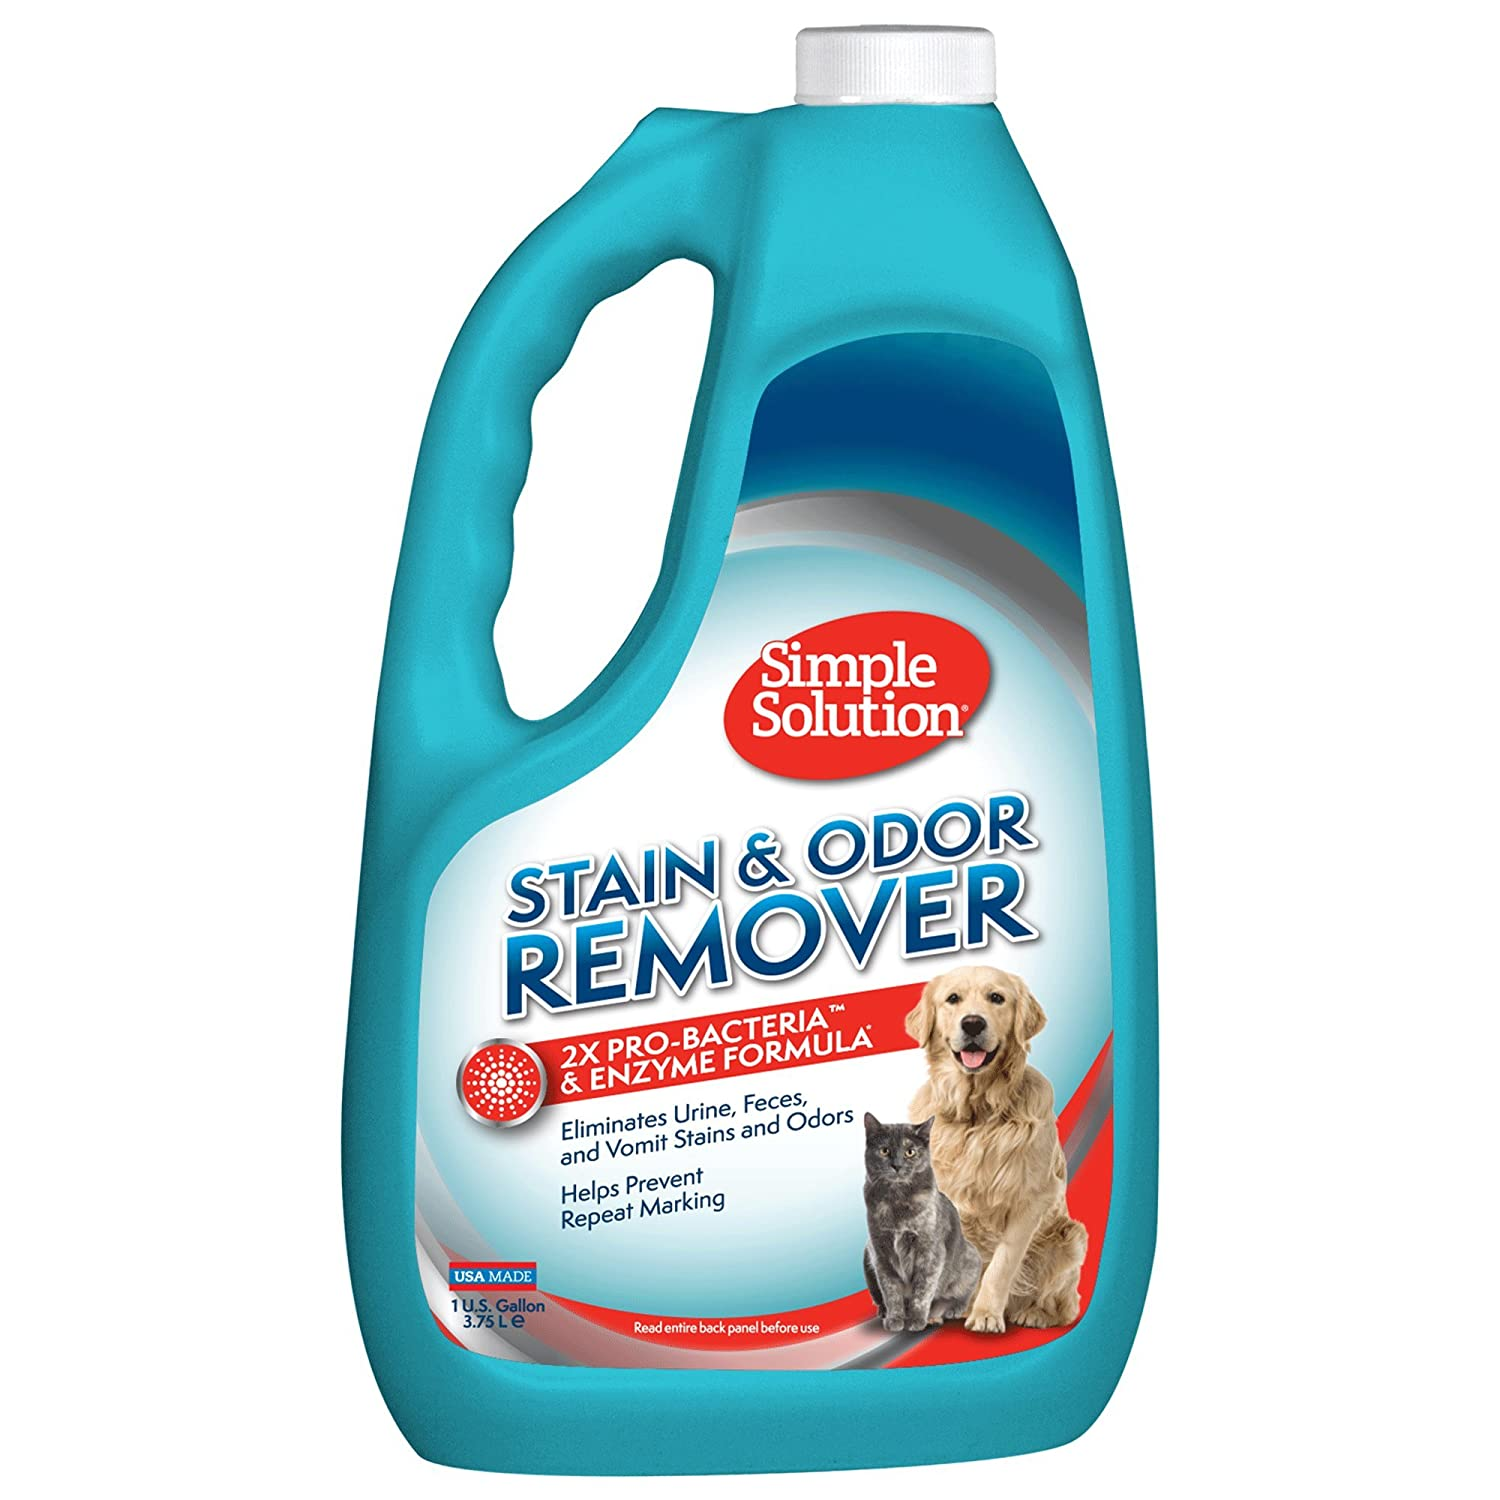 B0002APQV6 Simple Solution Pet Stain and Odor Remover | Enzymatic Cleaner with 2X Pro-Bacteria Cleaning Power 81vW%2B%2BB3-4L